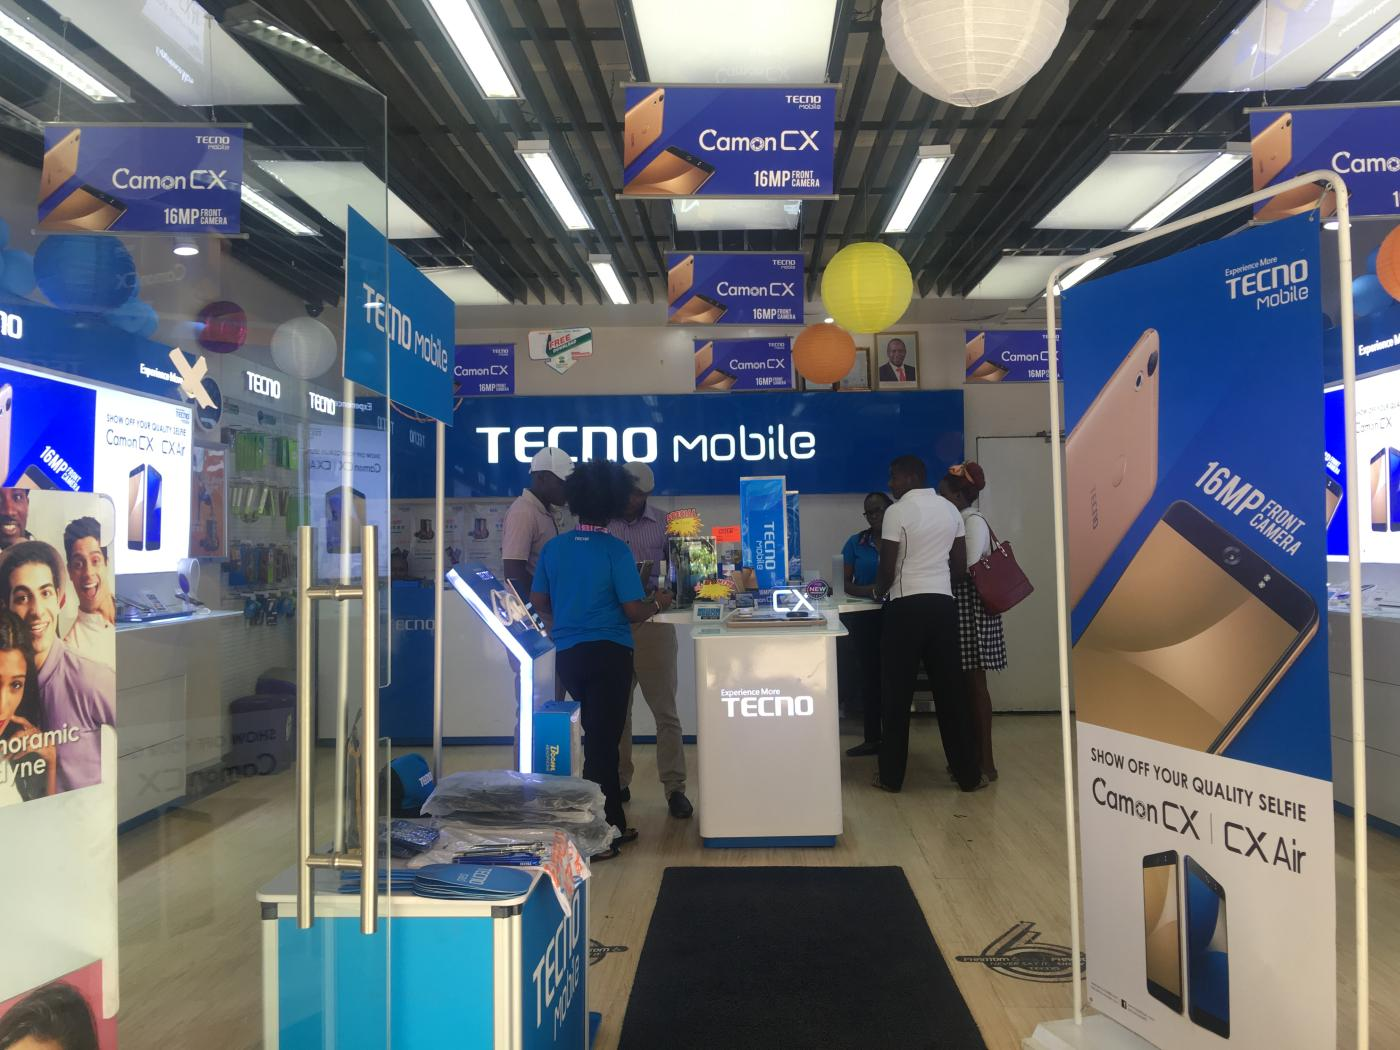 China's Transsion dominates Africa's phone market with Tecno